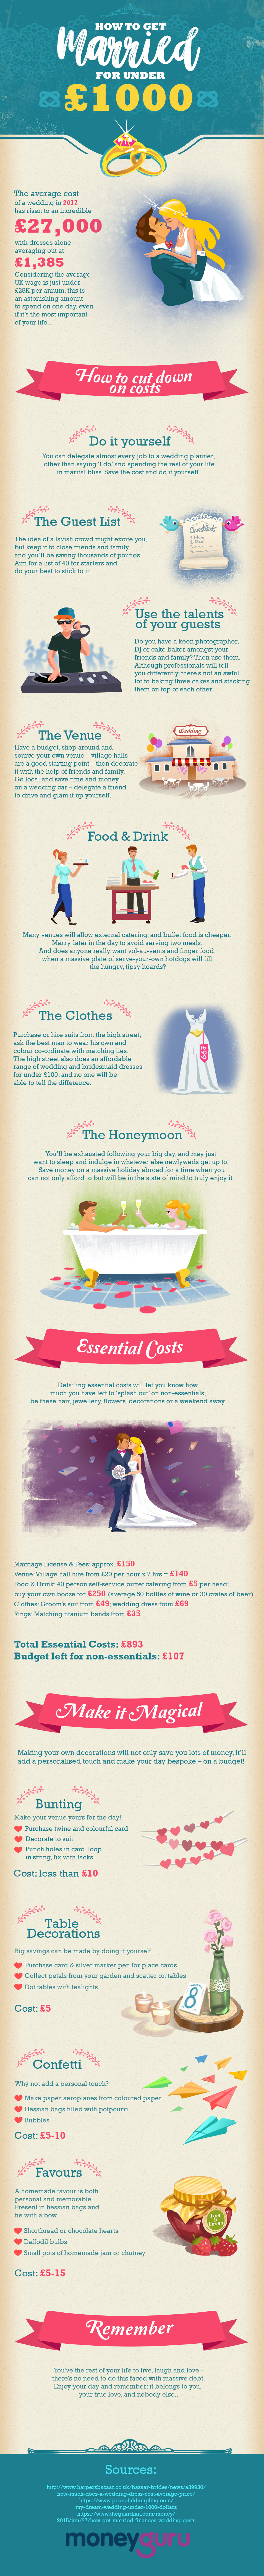 Get Married For Under £1000 [Infographic]